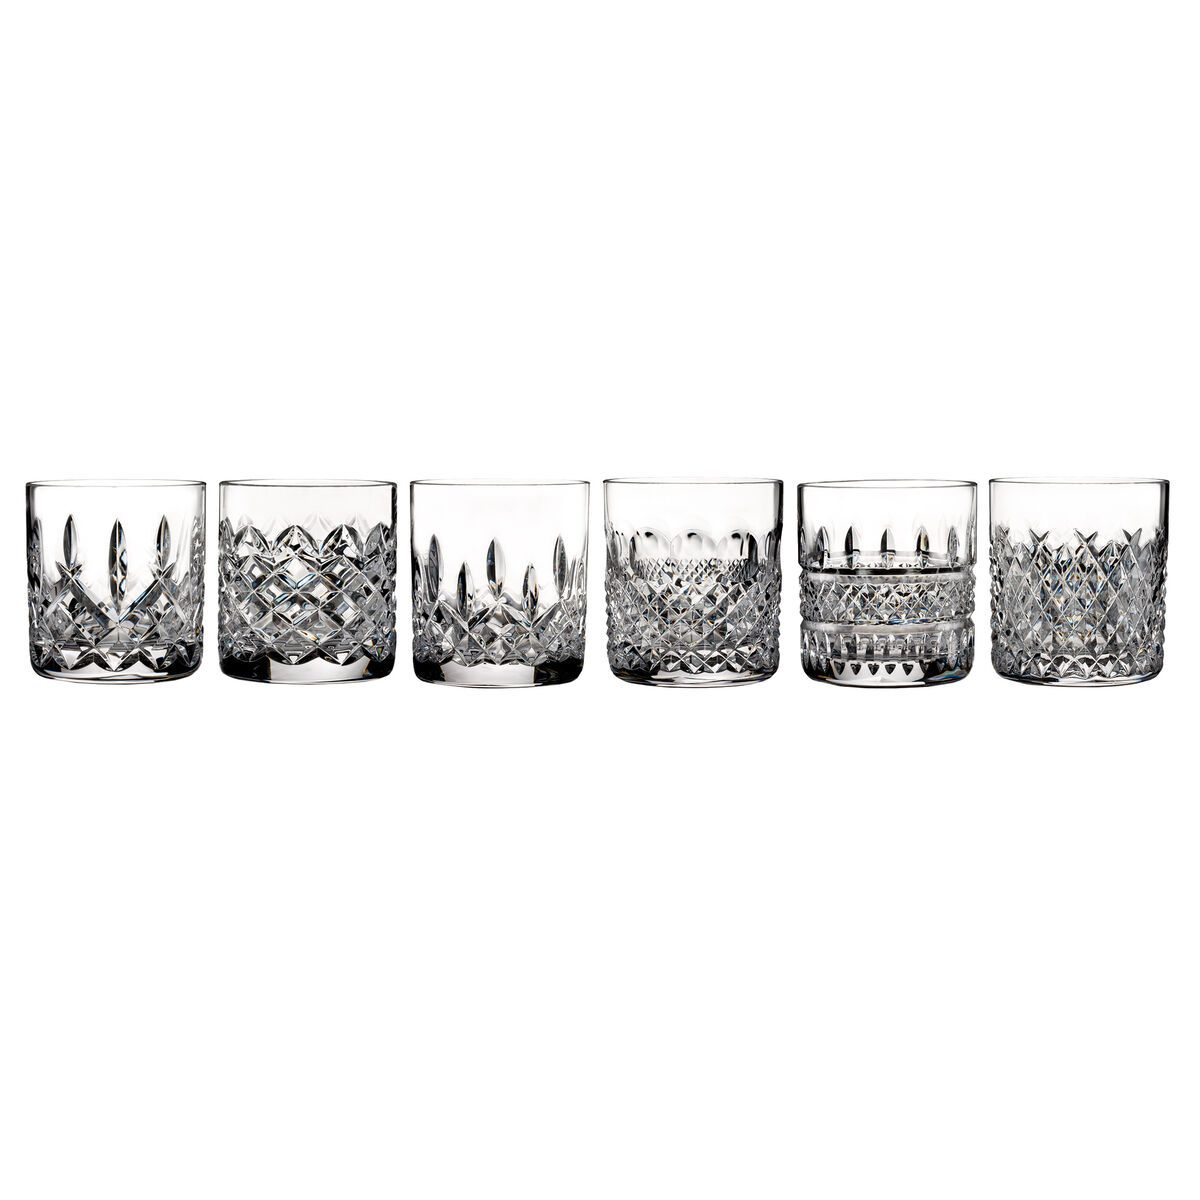 Waterford Crystal Connoisseur Set Of 6 Heritage Straight Sided Tumbler Glasses In 2020 Waterford Lismore Waterford Crystal Crystals